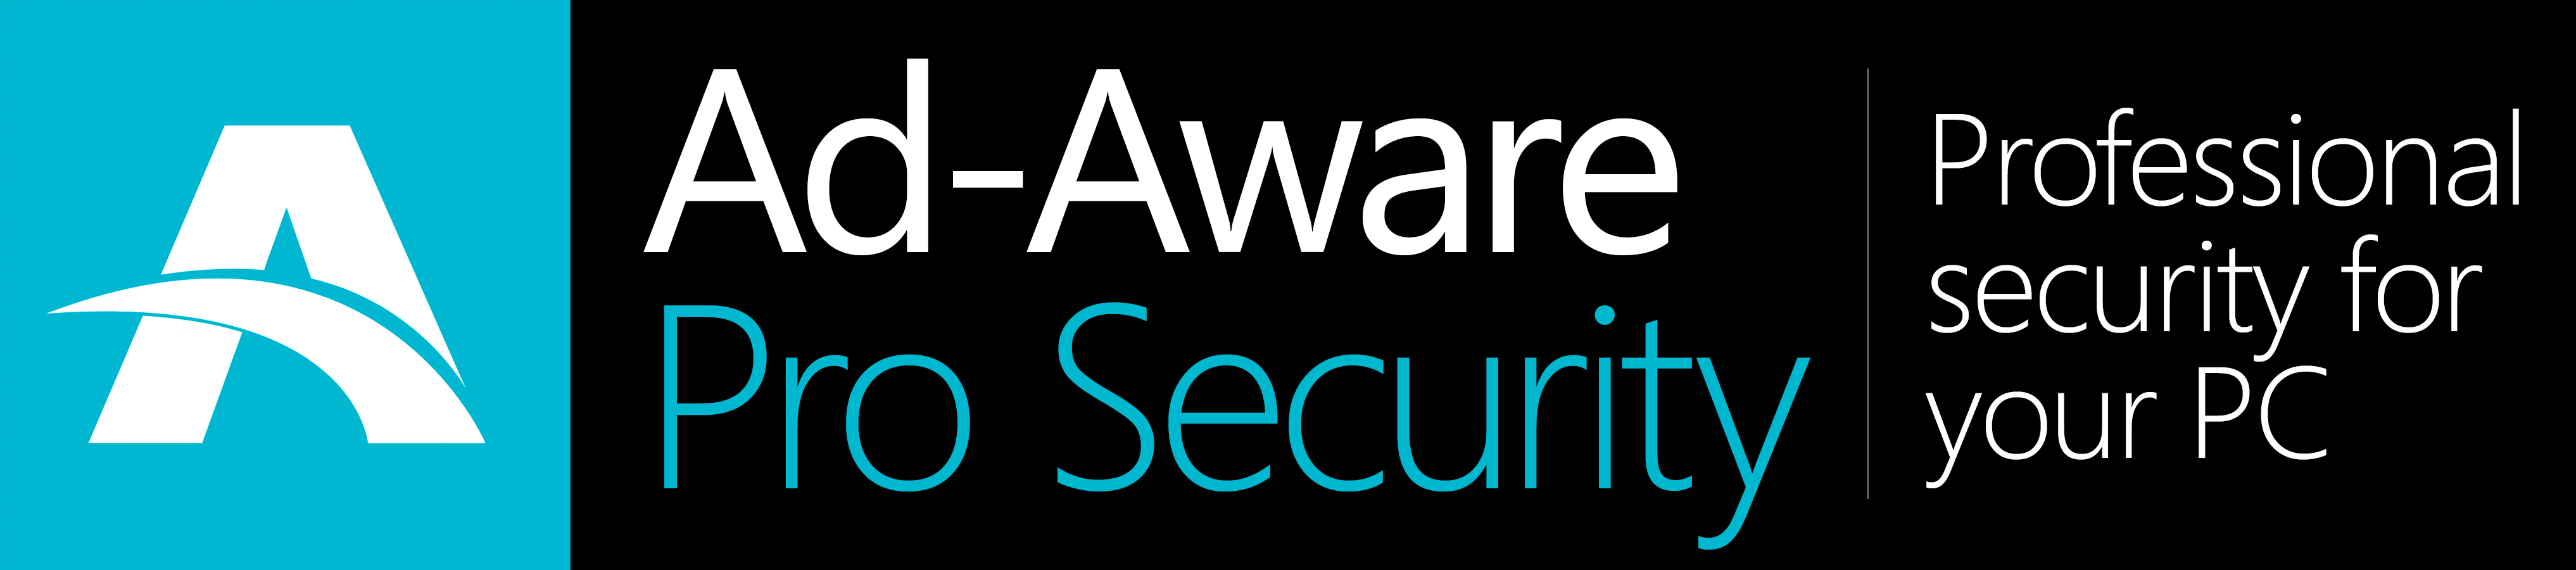 ad aware pro security 11